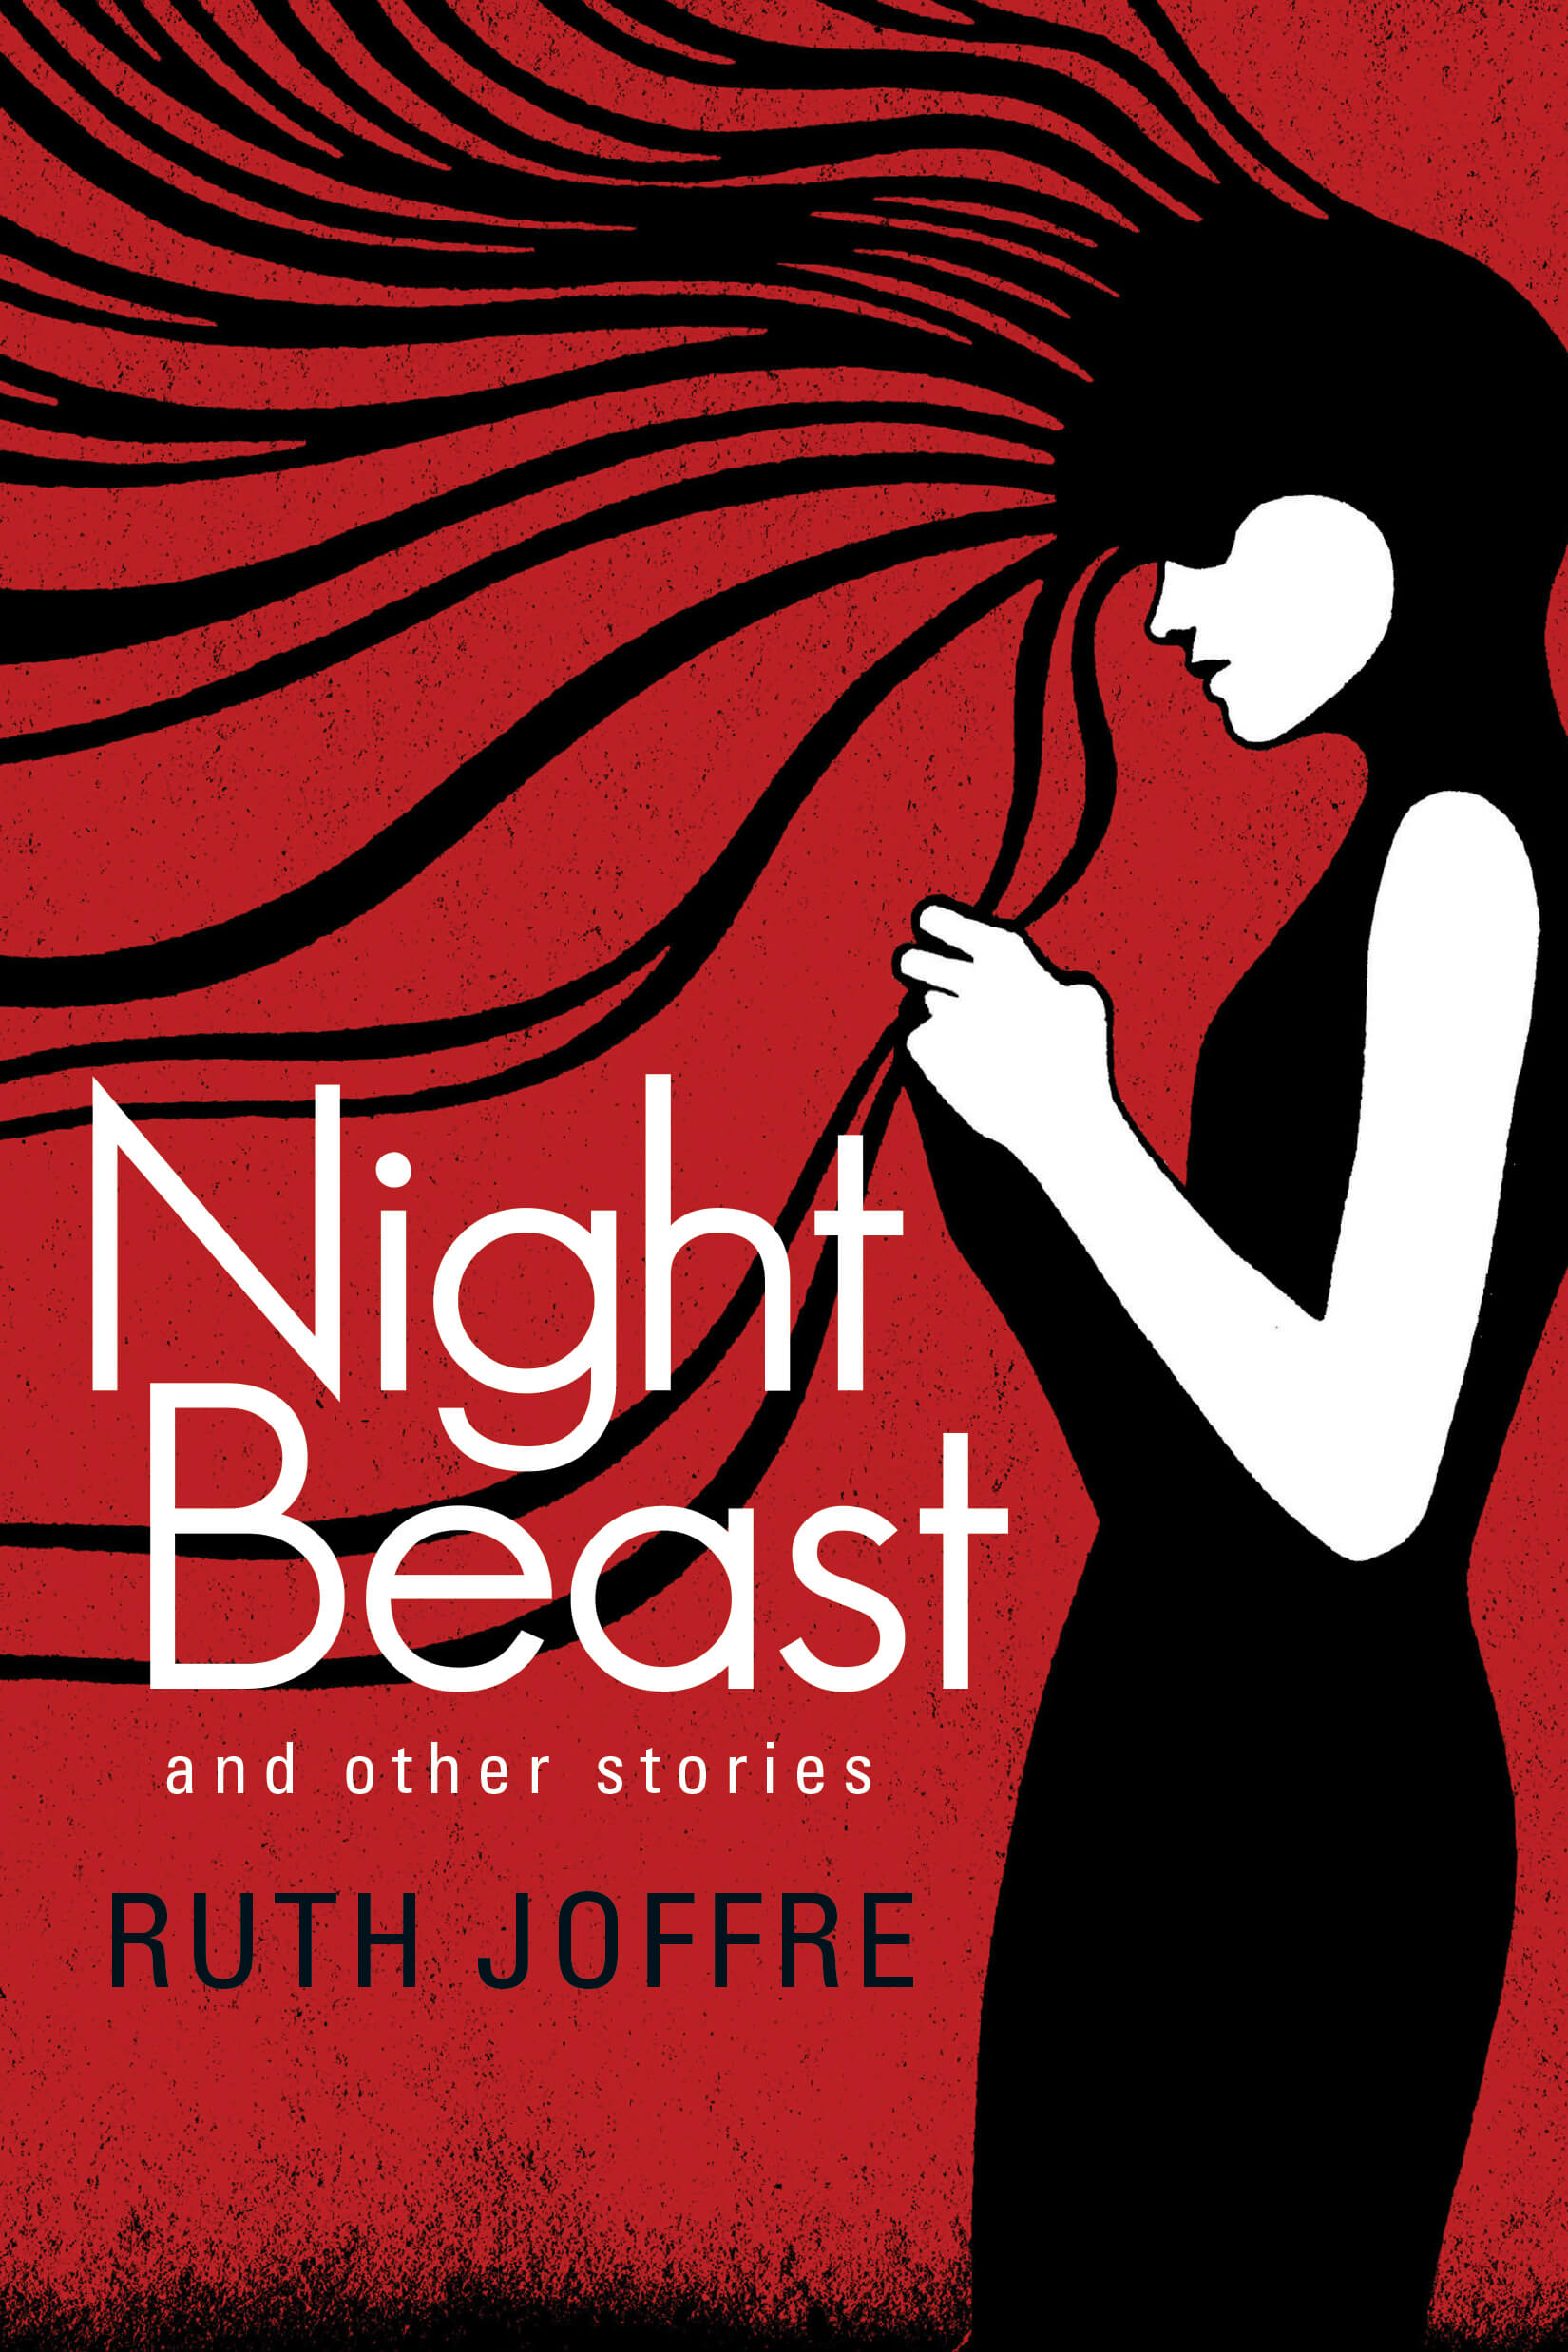 Night Beast book cover by Ruth Joffre